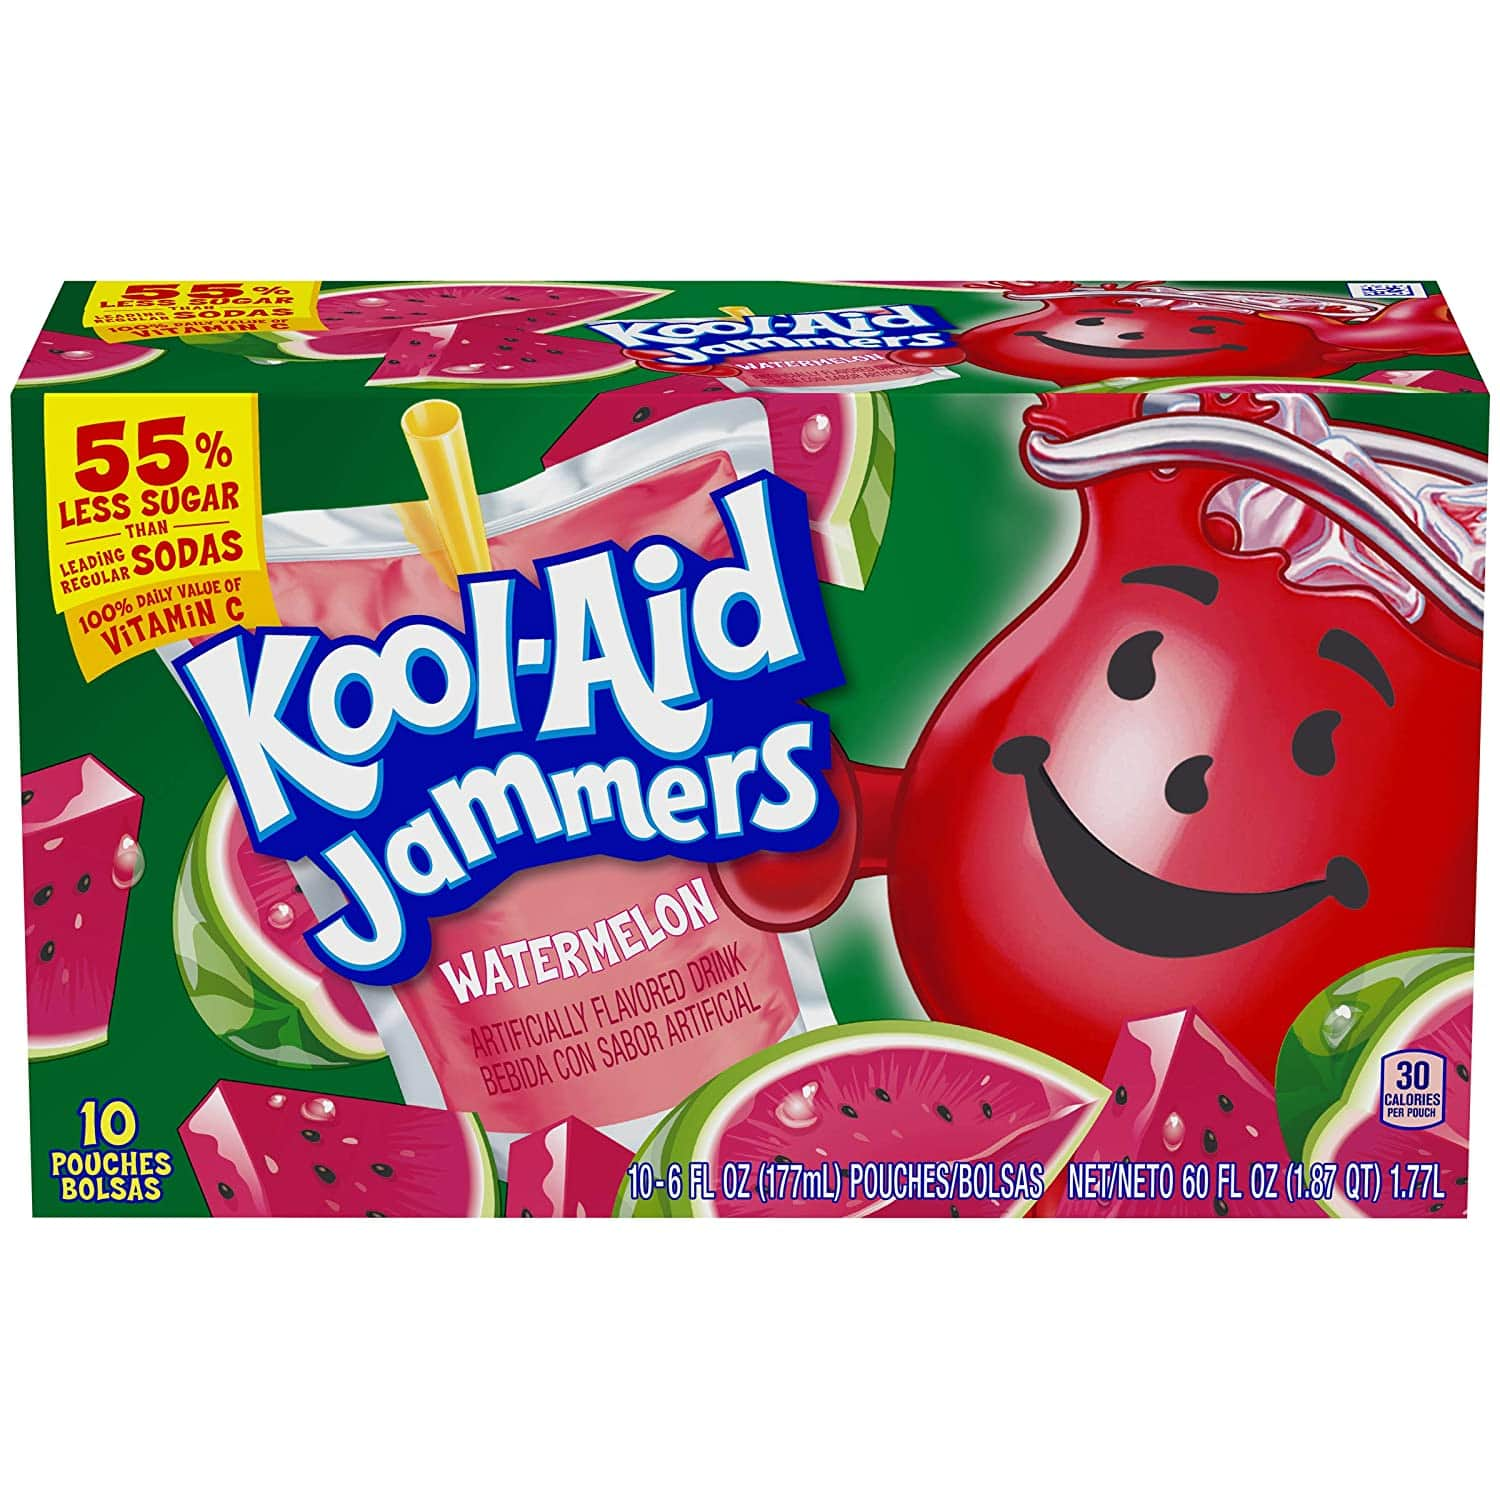 Kool-Aid Jammers Watermelon Flavored Juice Drink (10 Pouches) $1.44